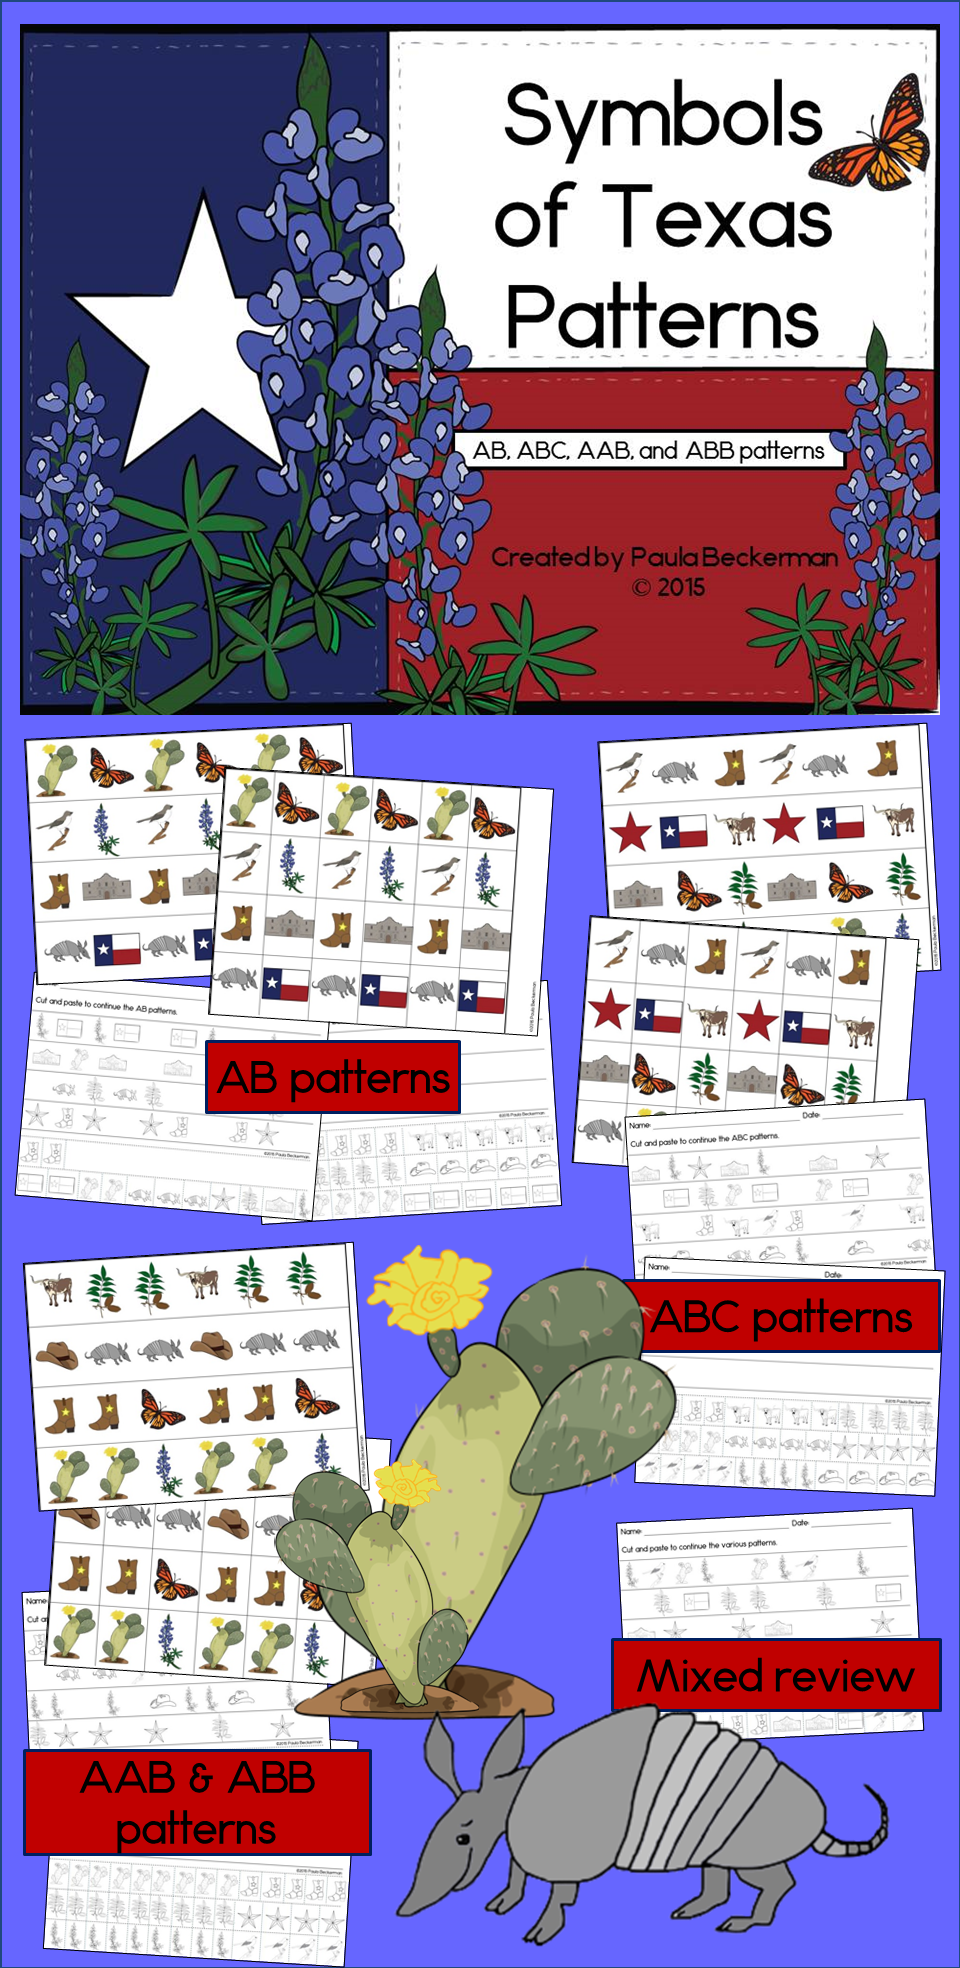 Texas Symbols Math Center With Ab Abc Aab Abb Patterns Fun